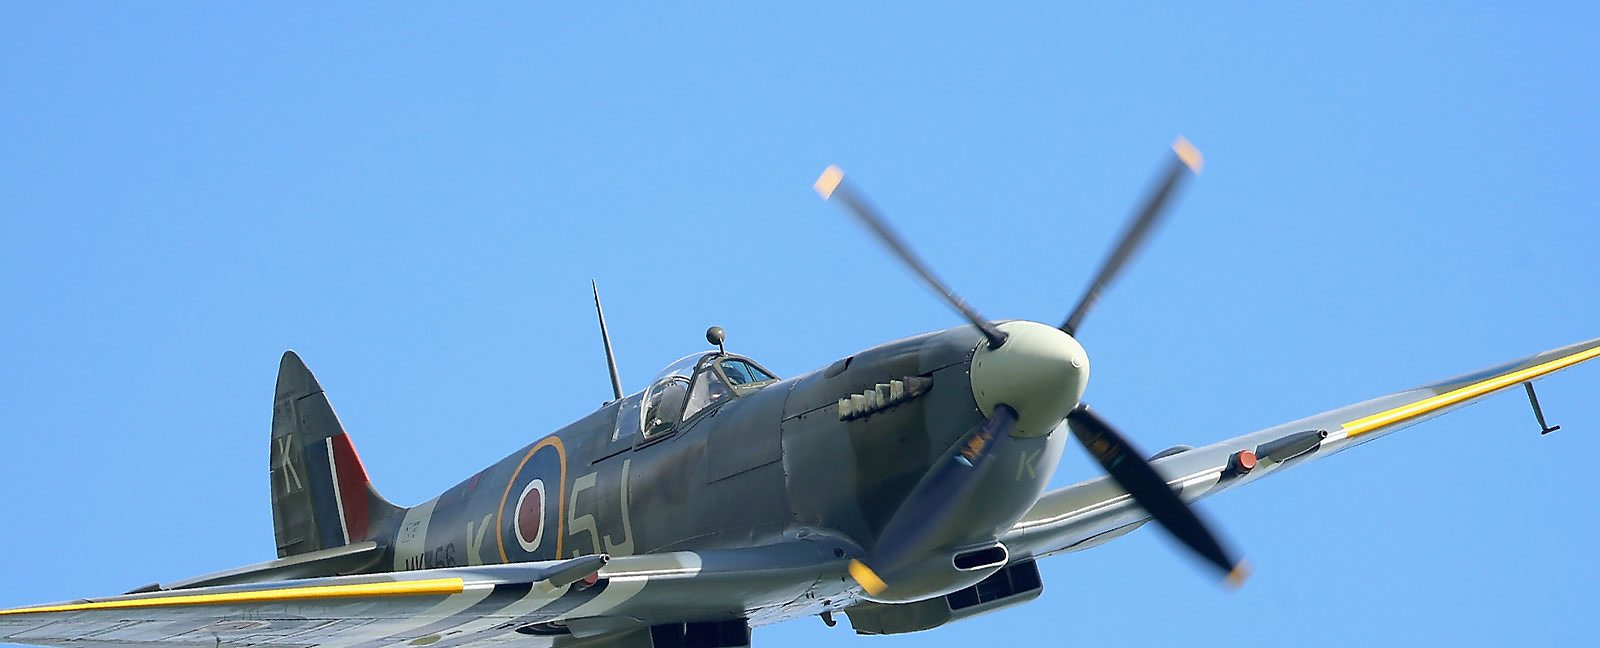 bbc iwonder - why do we love the spitfire?